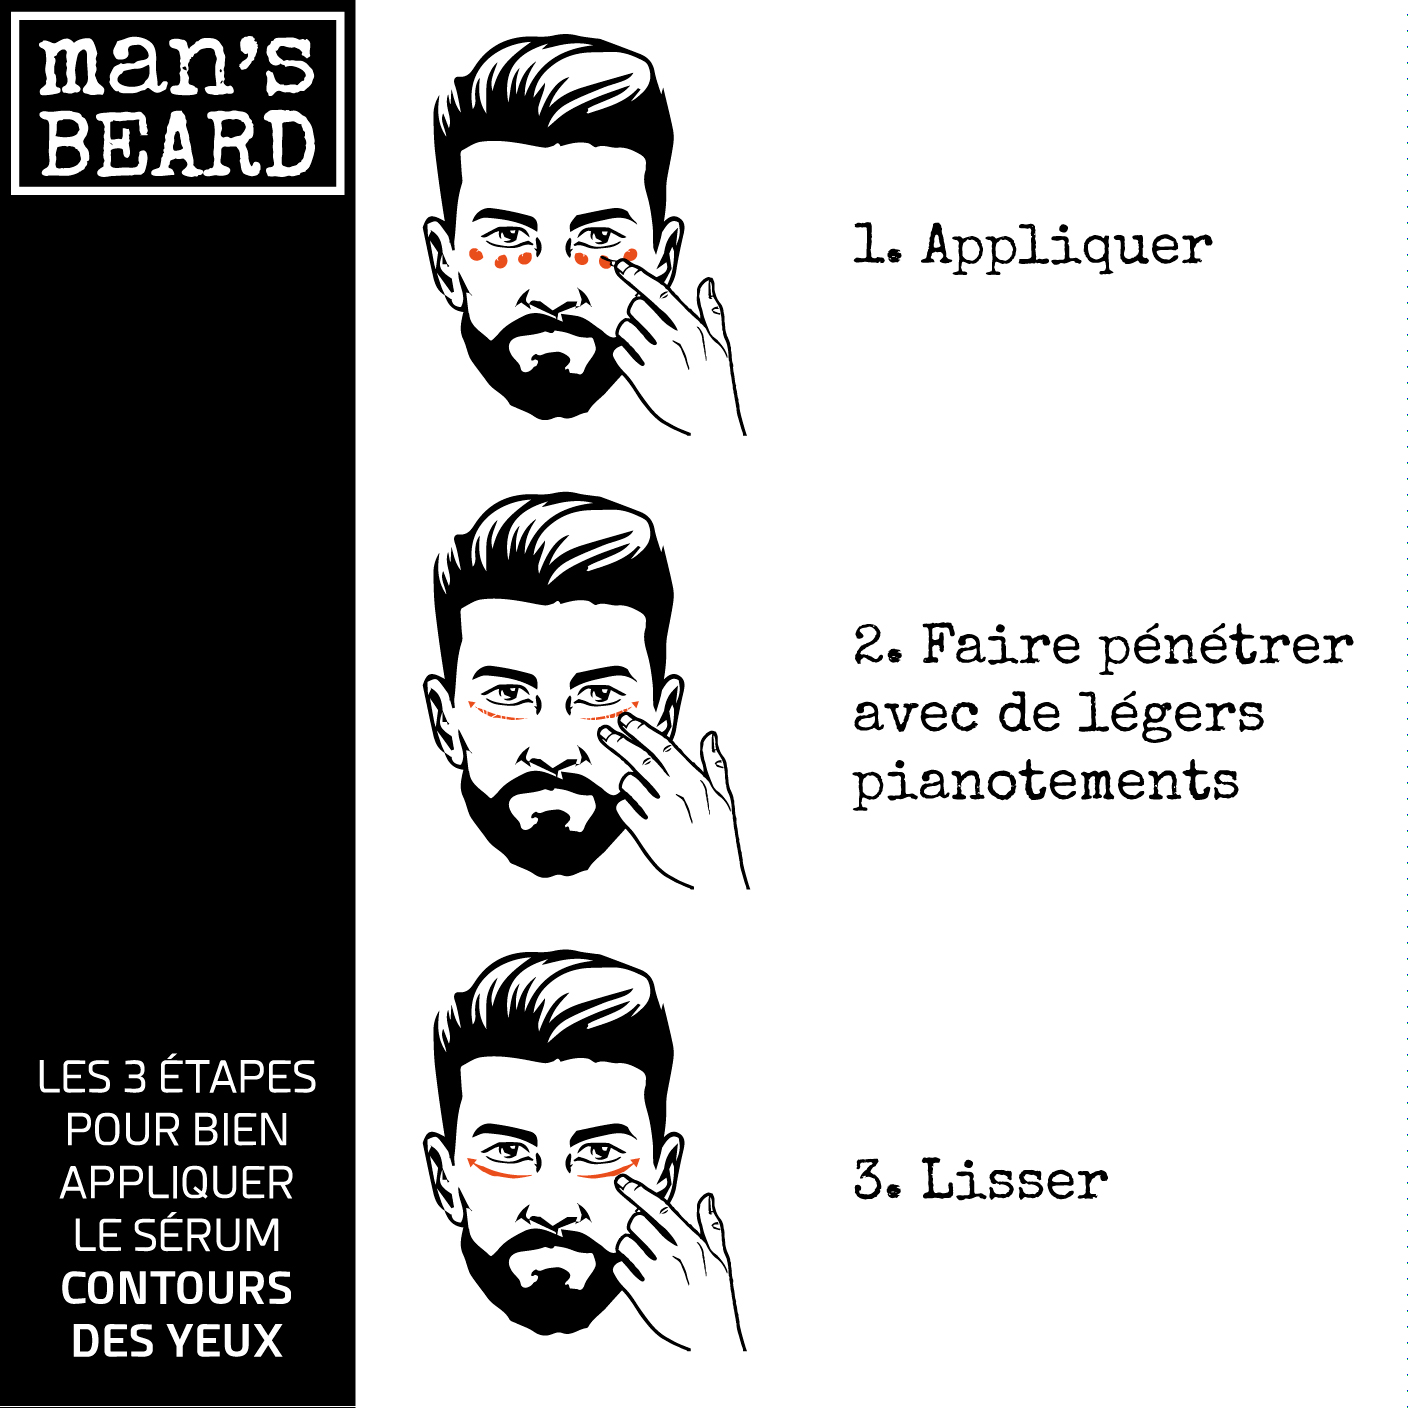 man 39 s beard s rum contours des yeux l 39 acide hyaluronique 15 ml man 39 s beard cosm tique. Black Bedroom Furniture Sets. Home Design Ideas